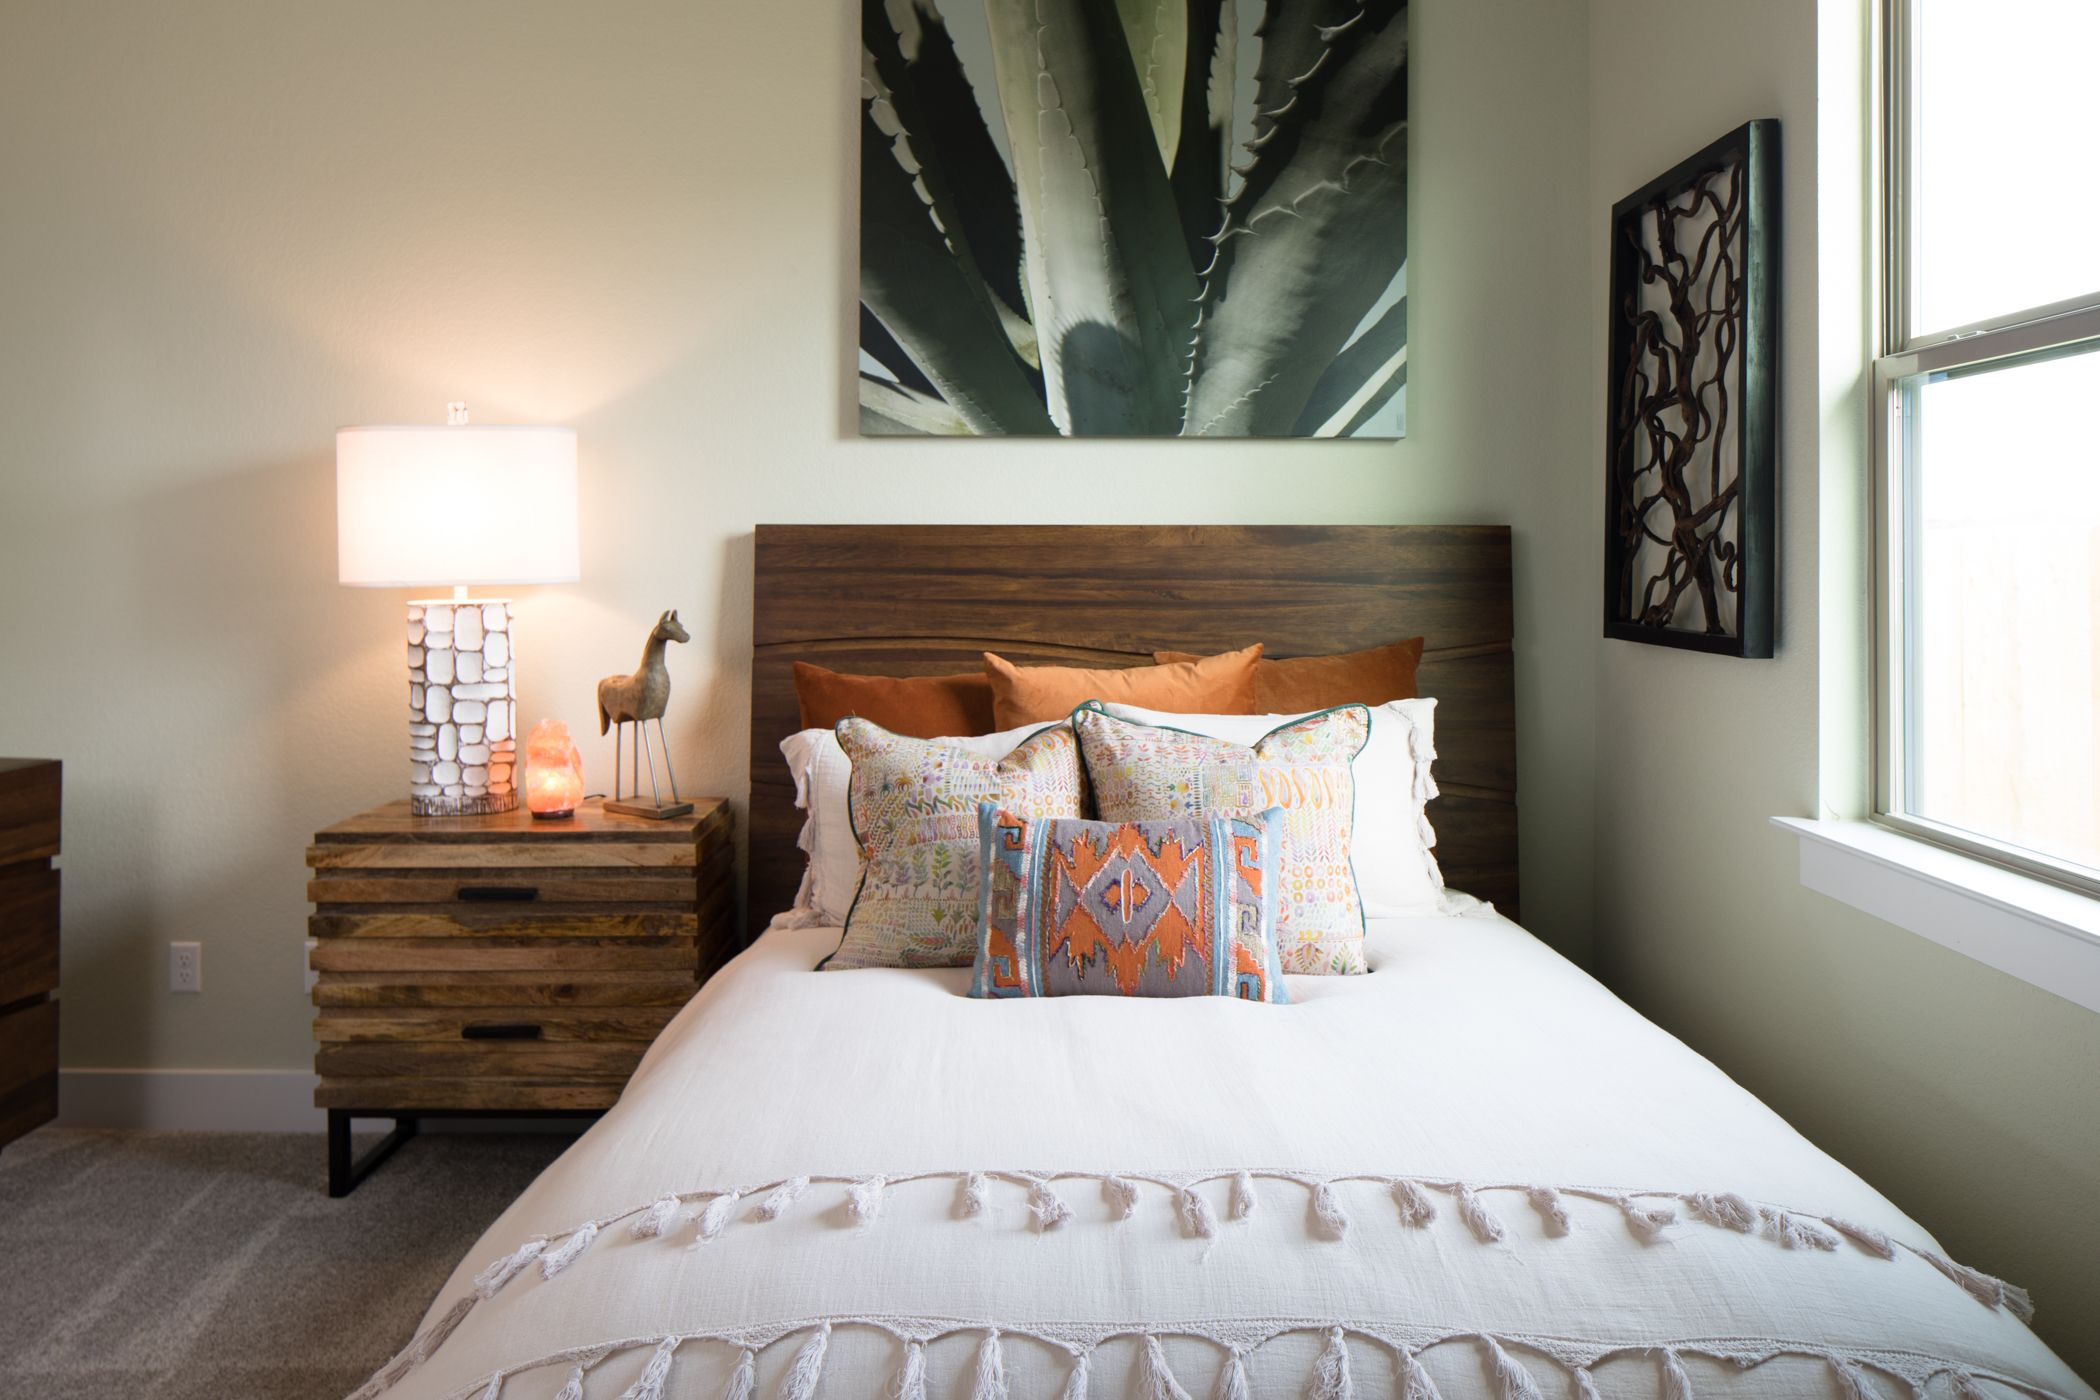 Bedroom featured in the Monroe 4120 By GFO Home in Austin, TX